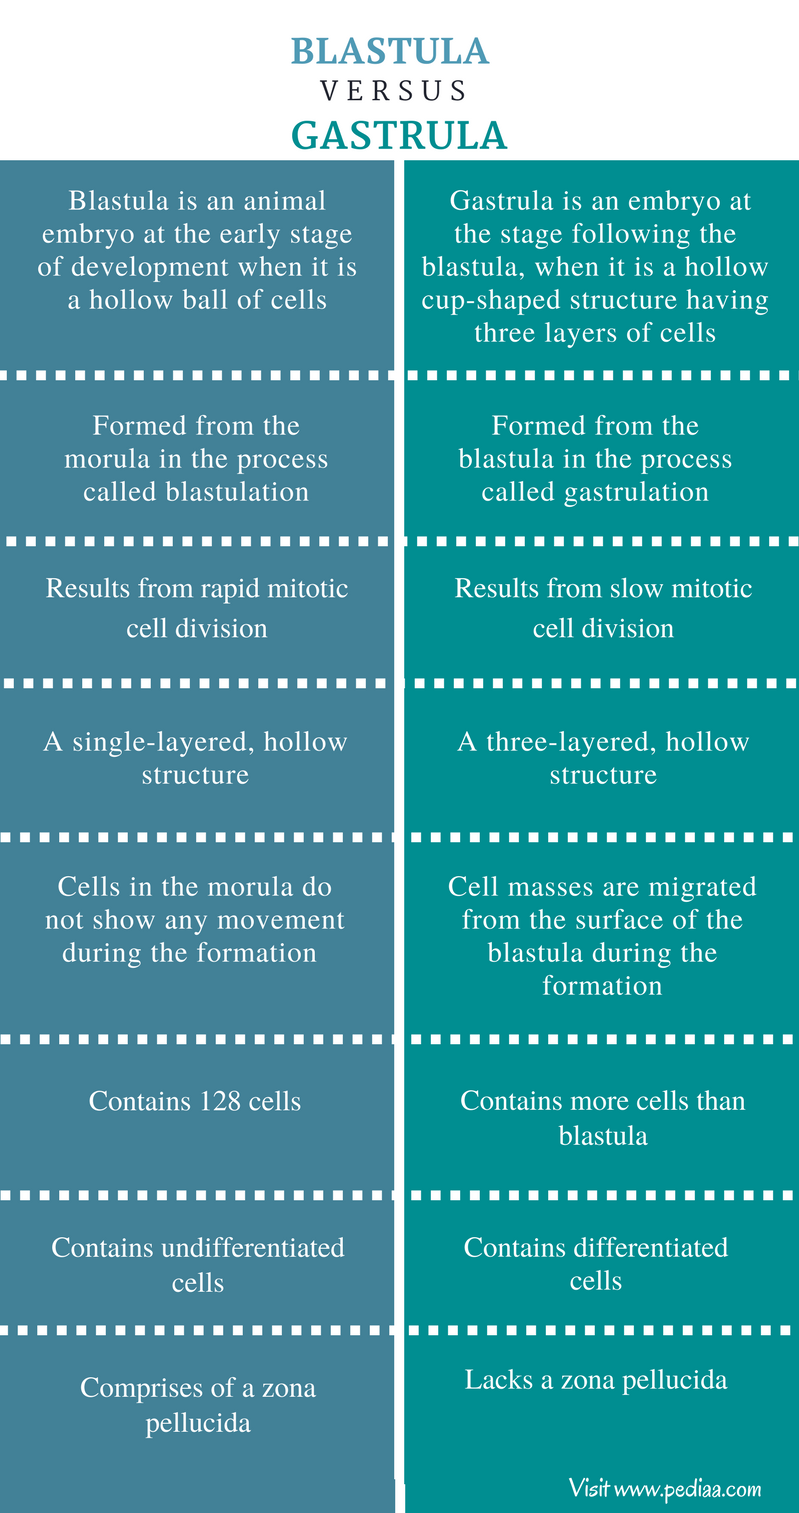 Difference Between Blastula and Gastrula - Comparison Summary